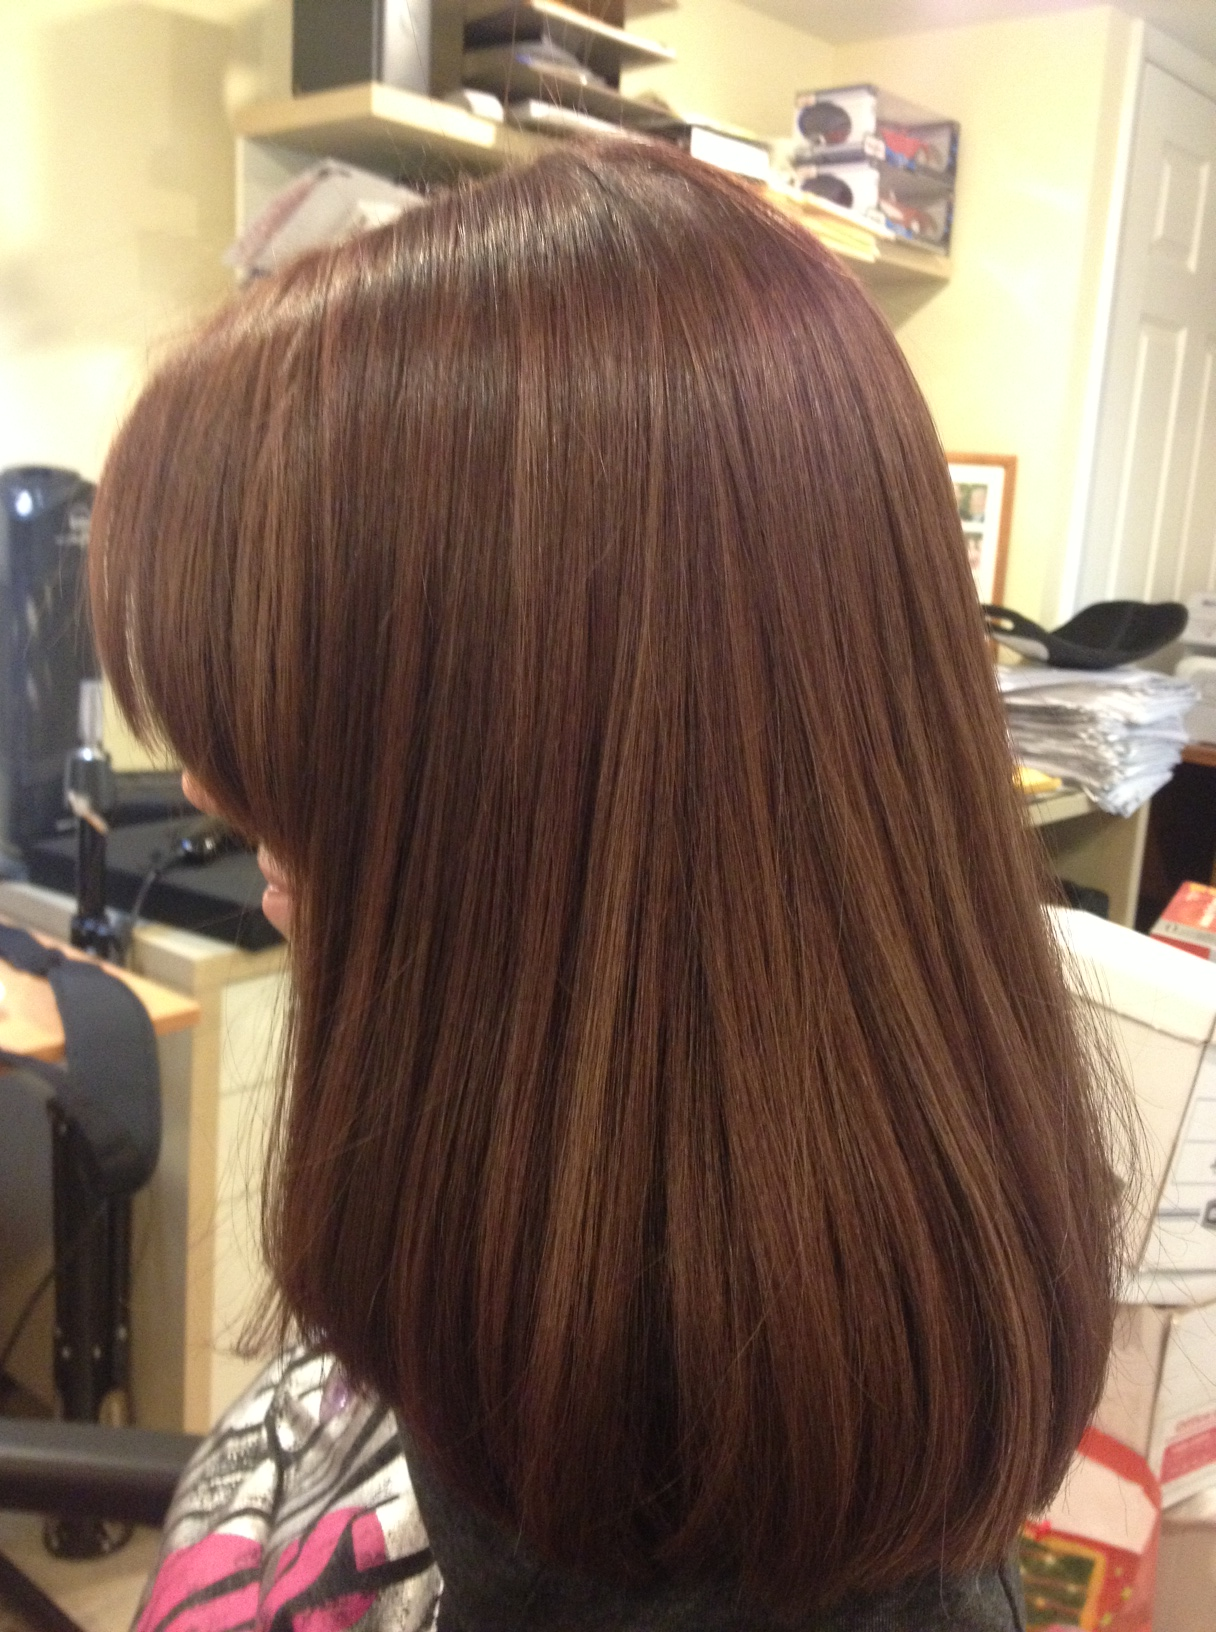 Total Hair Transformation Keratin Treatment Success With